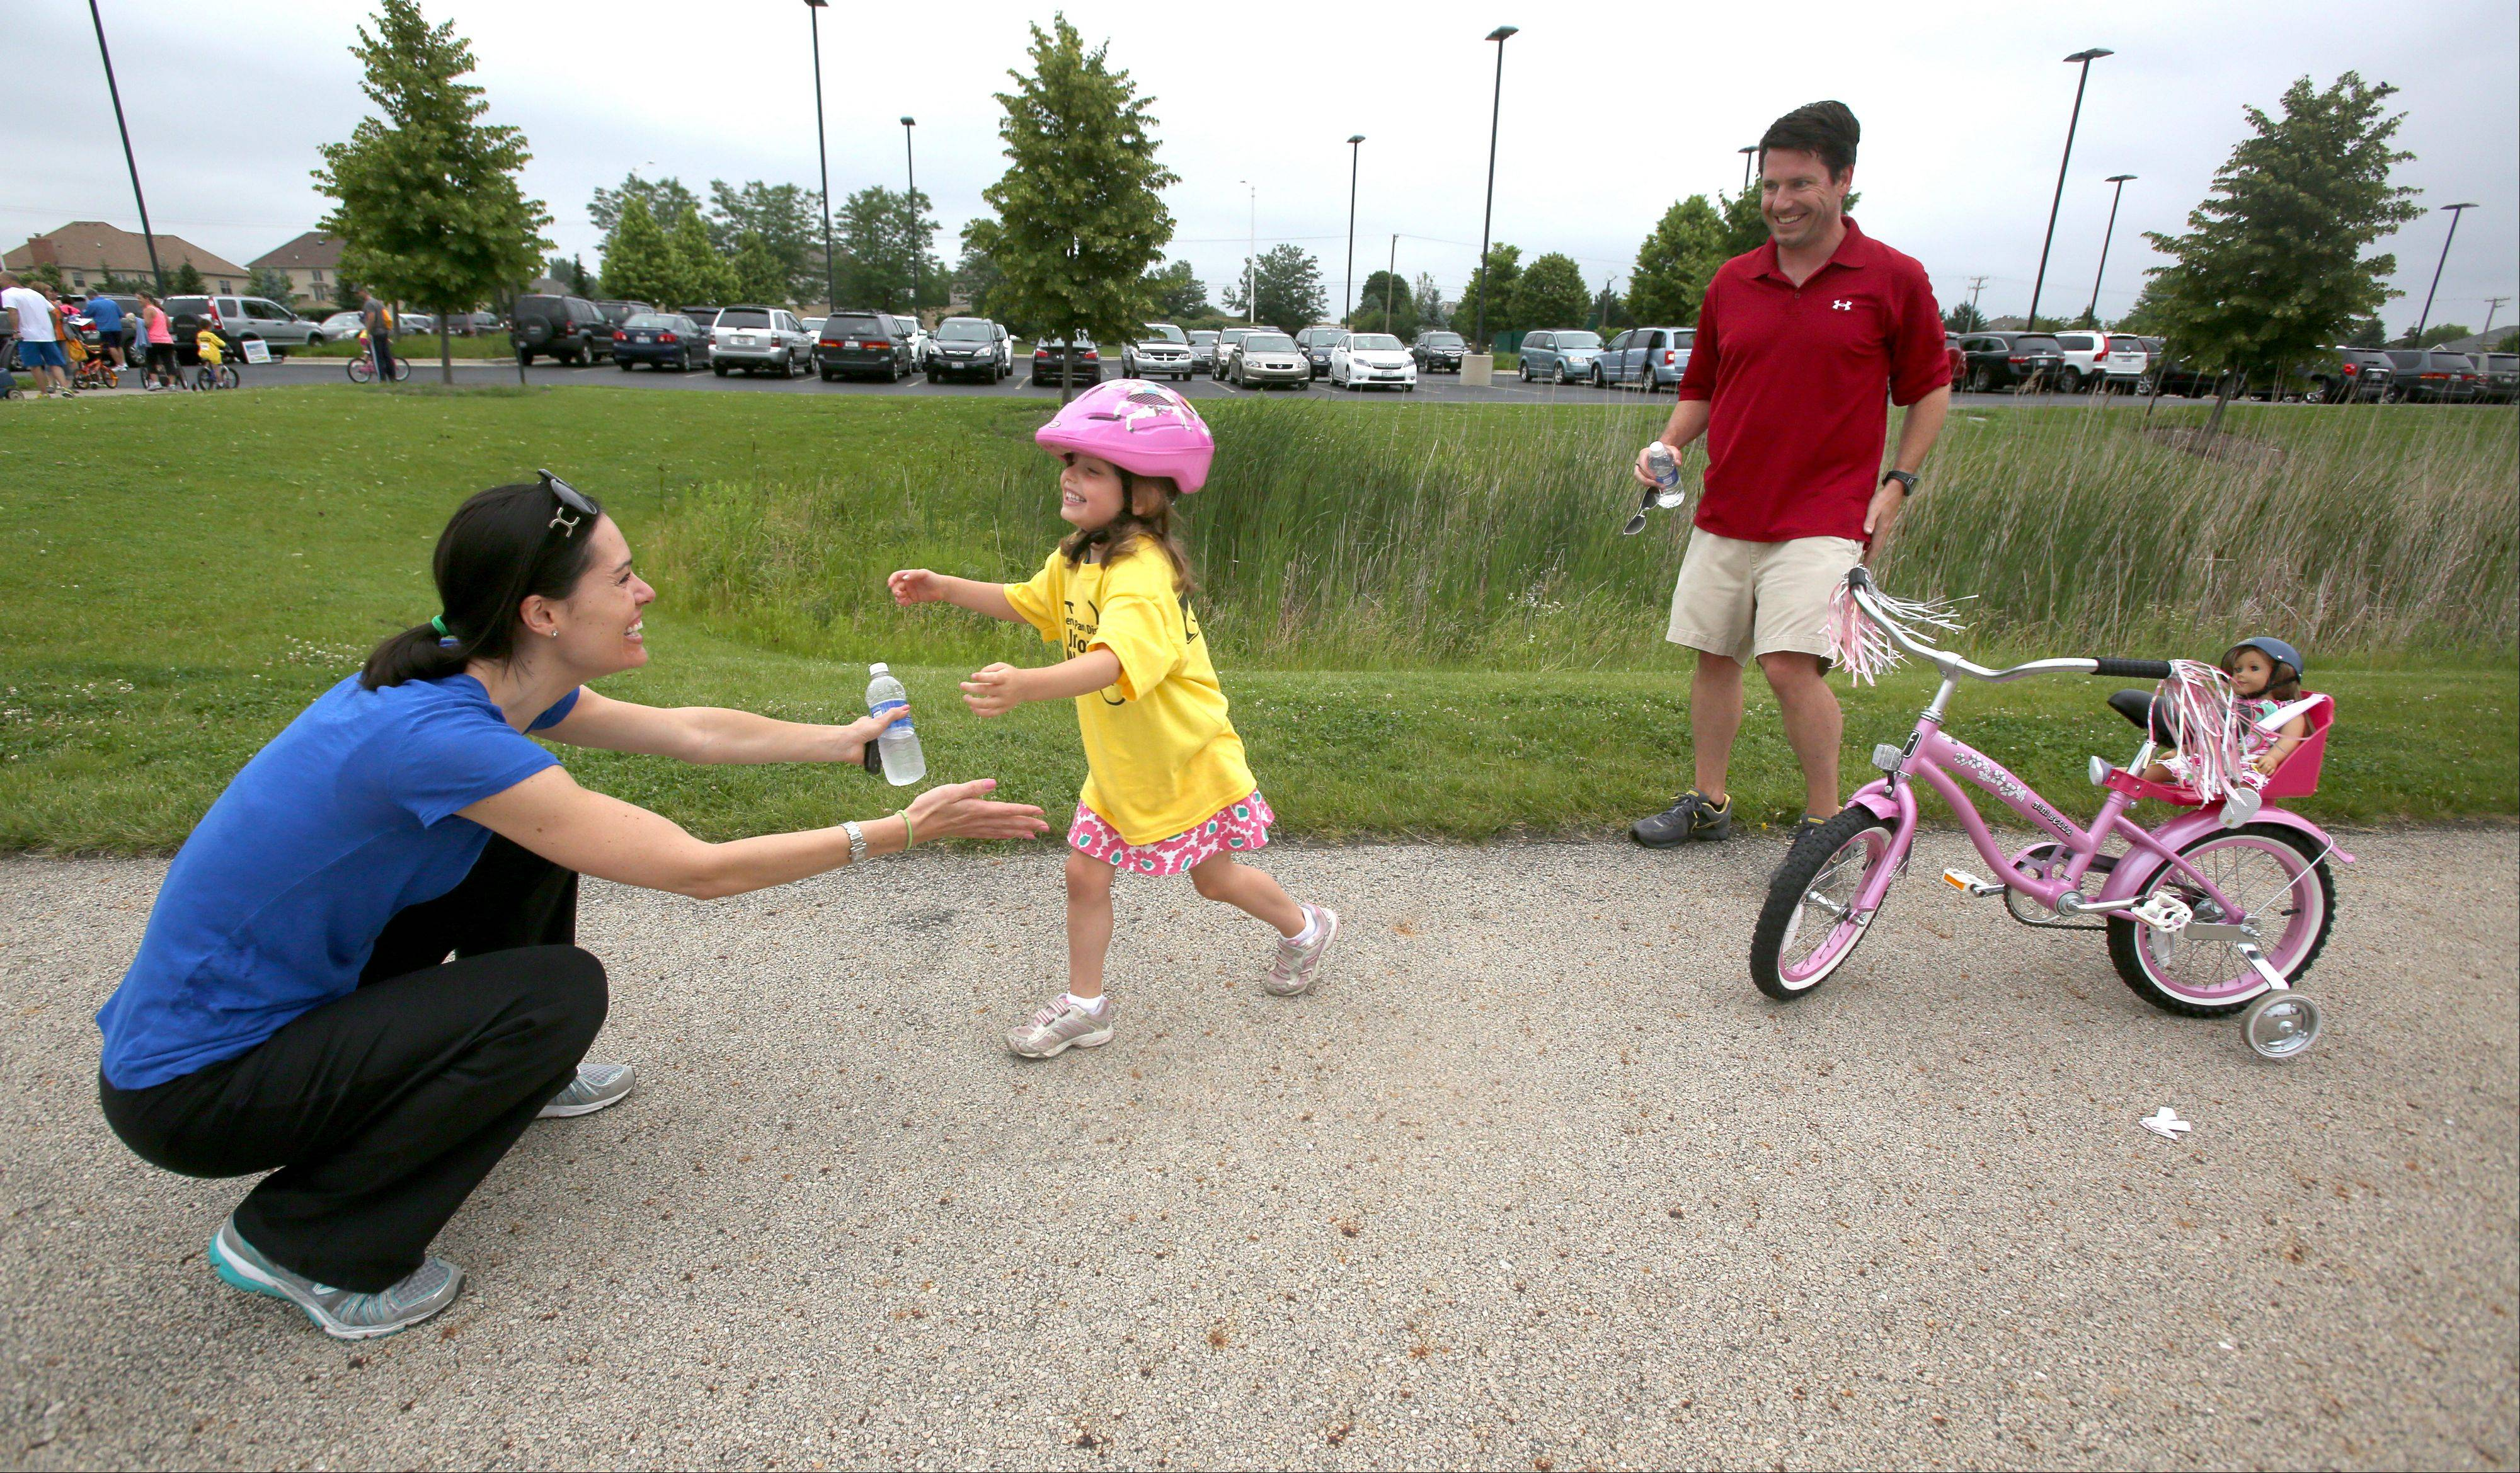 Ava Boren, 2, gets a hug from her mom Robin Boren after finishing the Naperville Park District's first Junior Tour de Naperville, a 1.2 mile bicycle loop held at Commissioner's Park. Alan Boren,